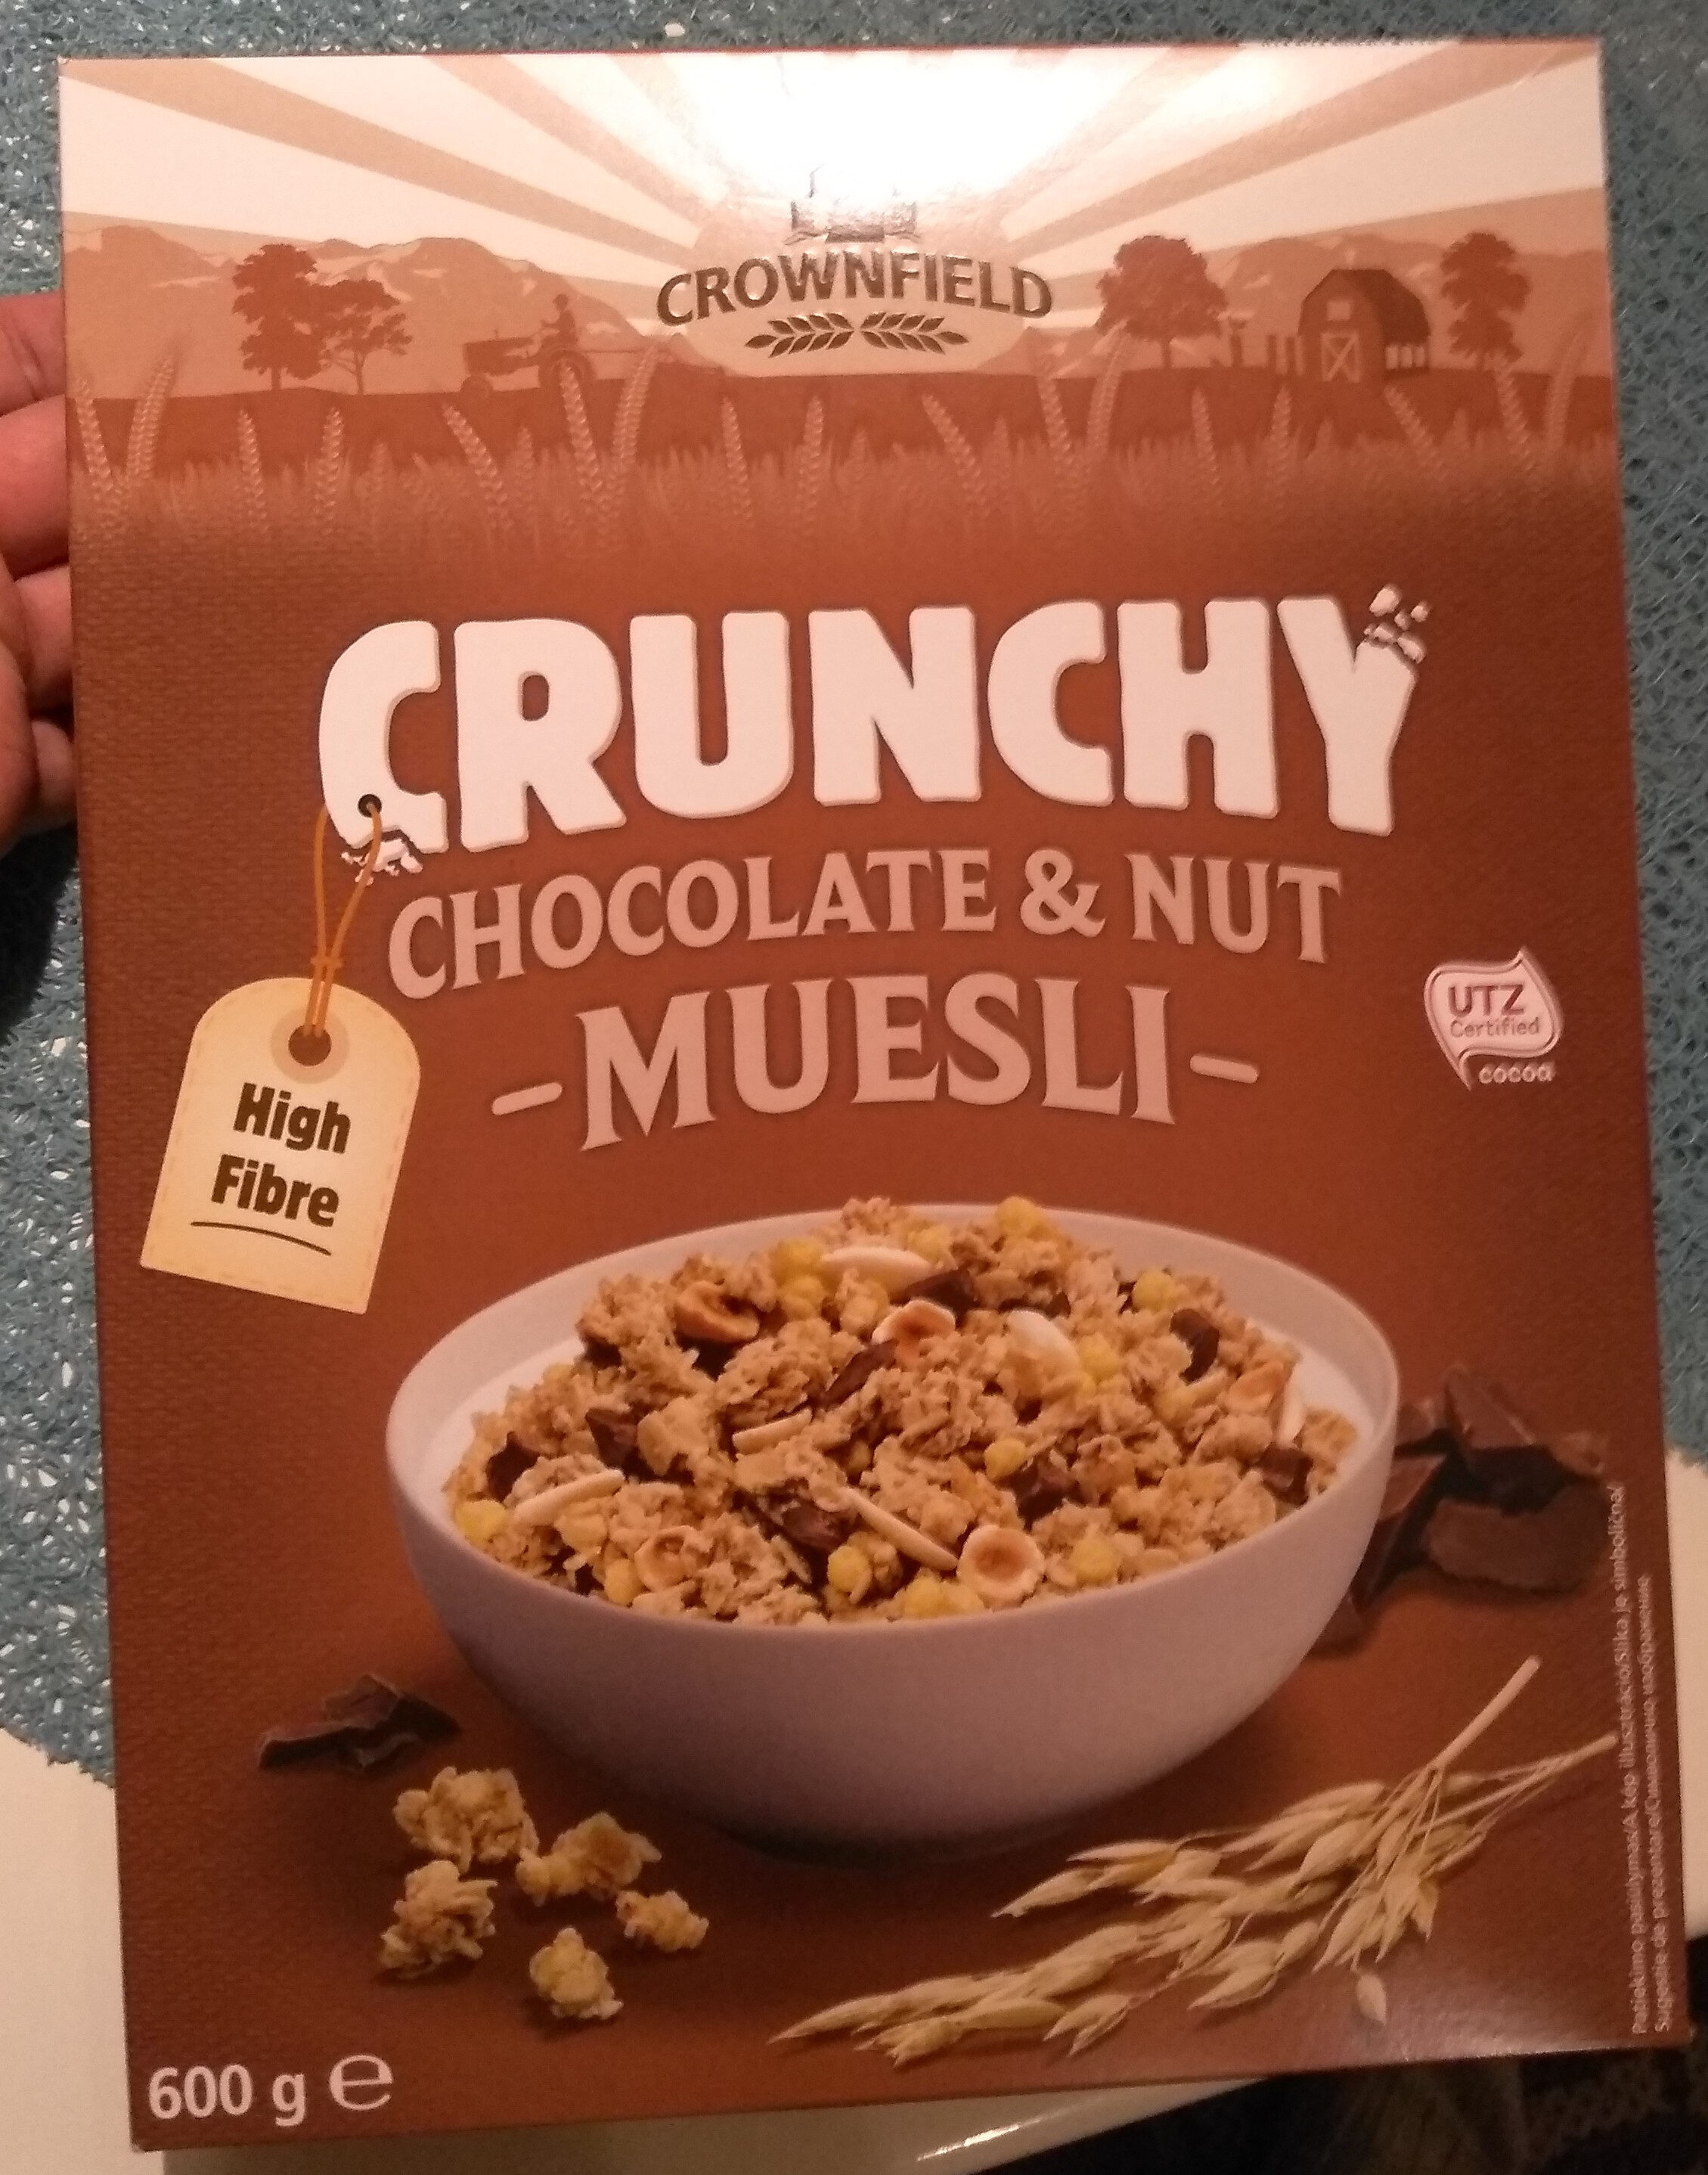 Crunchy muesli - Chocolate & Nuts - Product - en